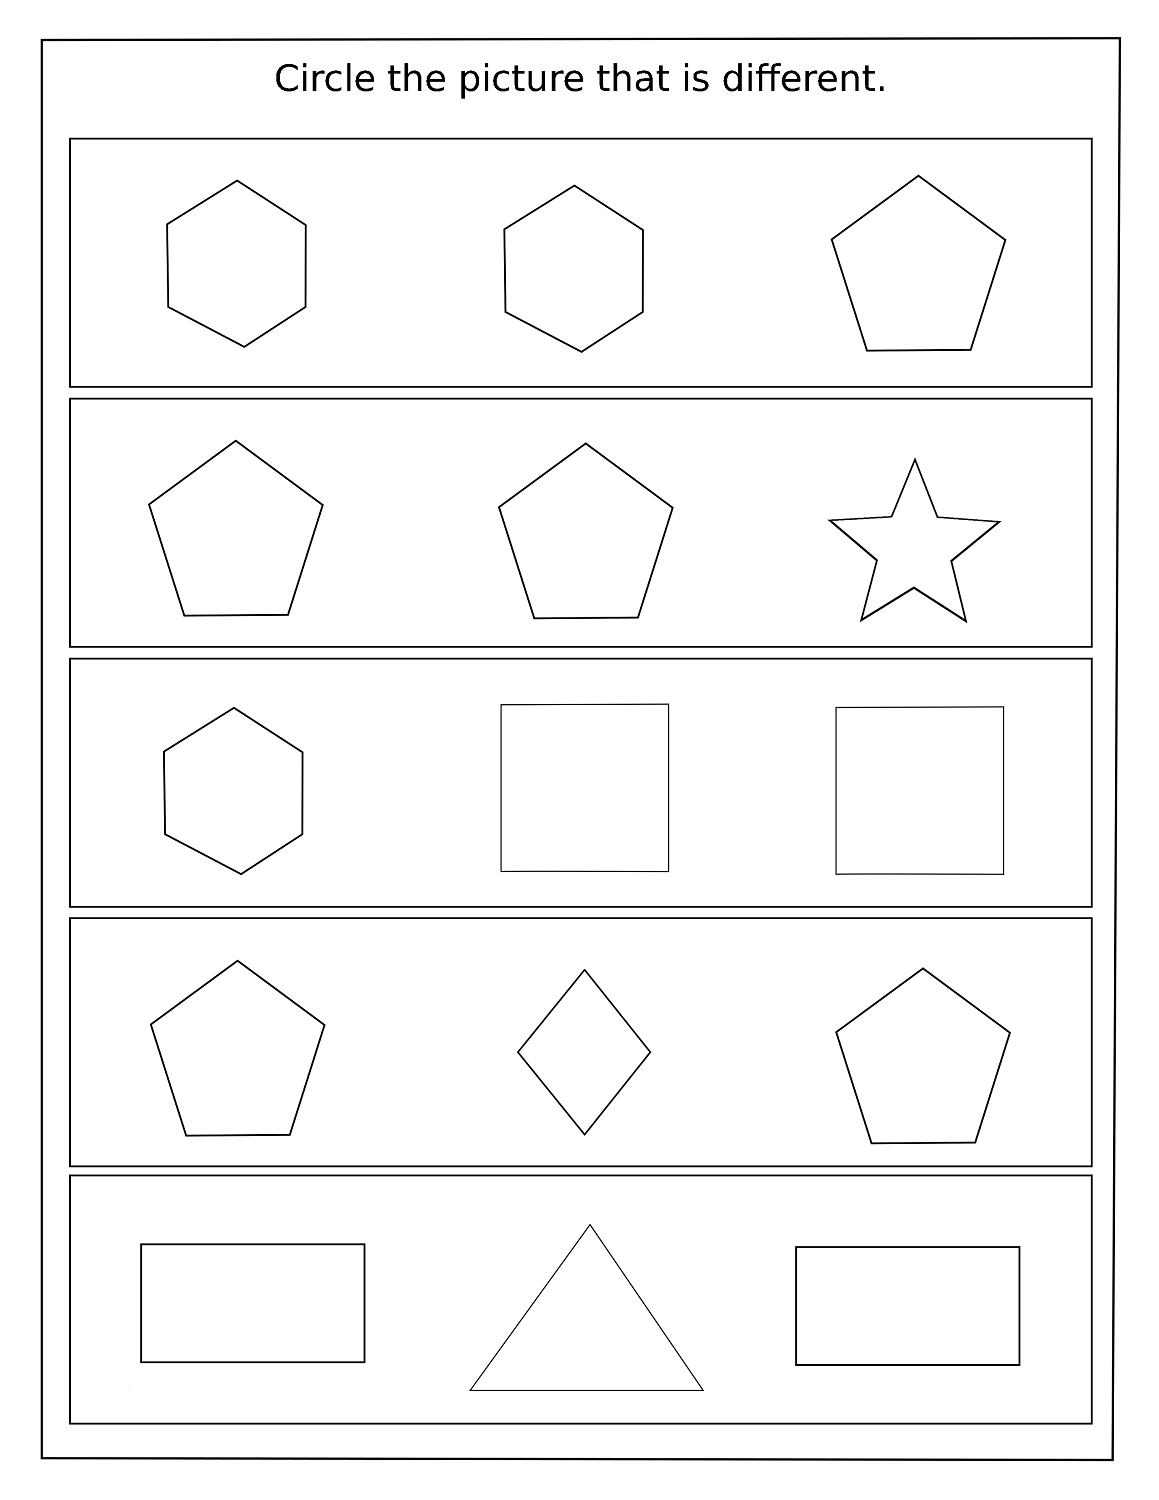 same-and-different-worksheets-printable